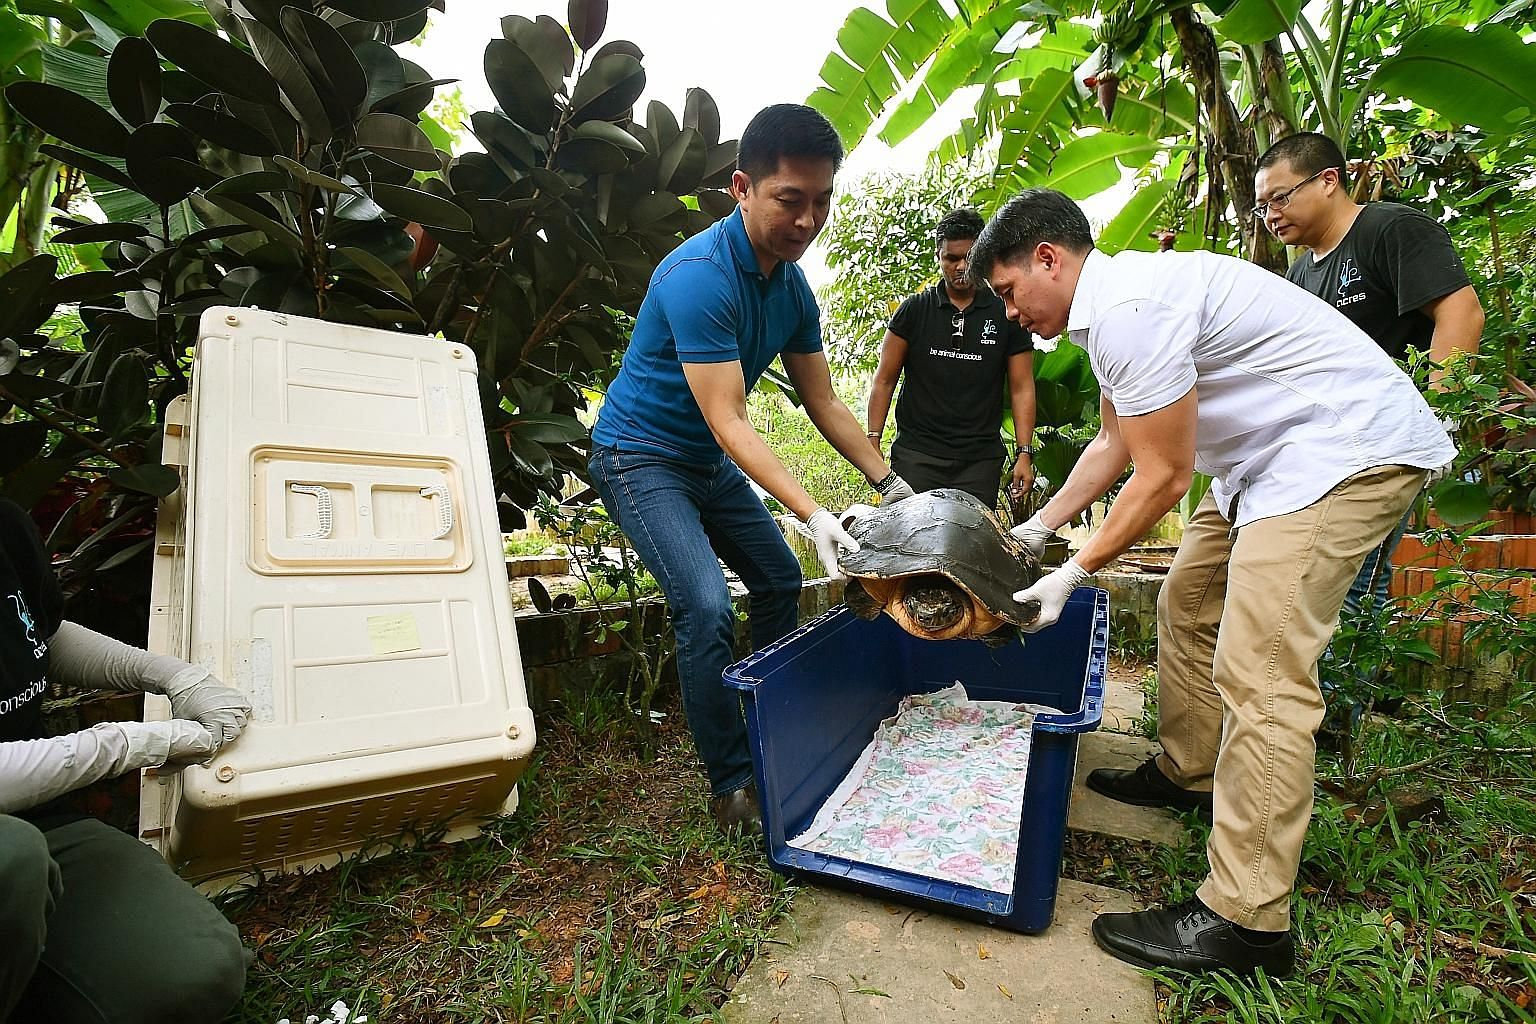 Minister Tan (far left) and Mr Ng transferring Rahayu, an endangered Malaysian giant turtle, into a transport crate for its trip back home to Malaysia.